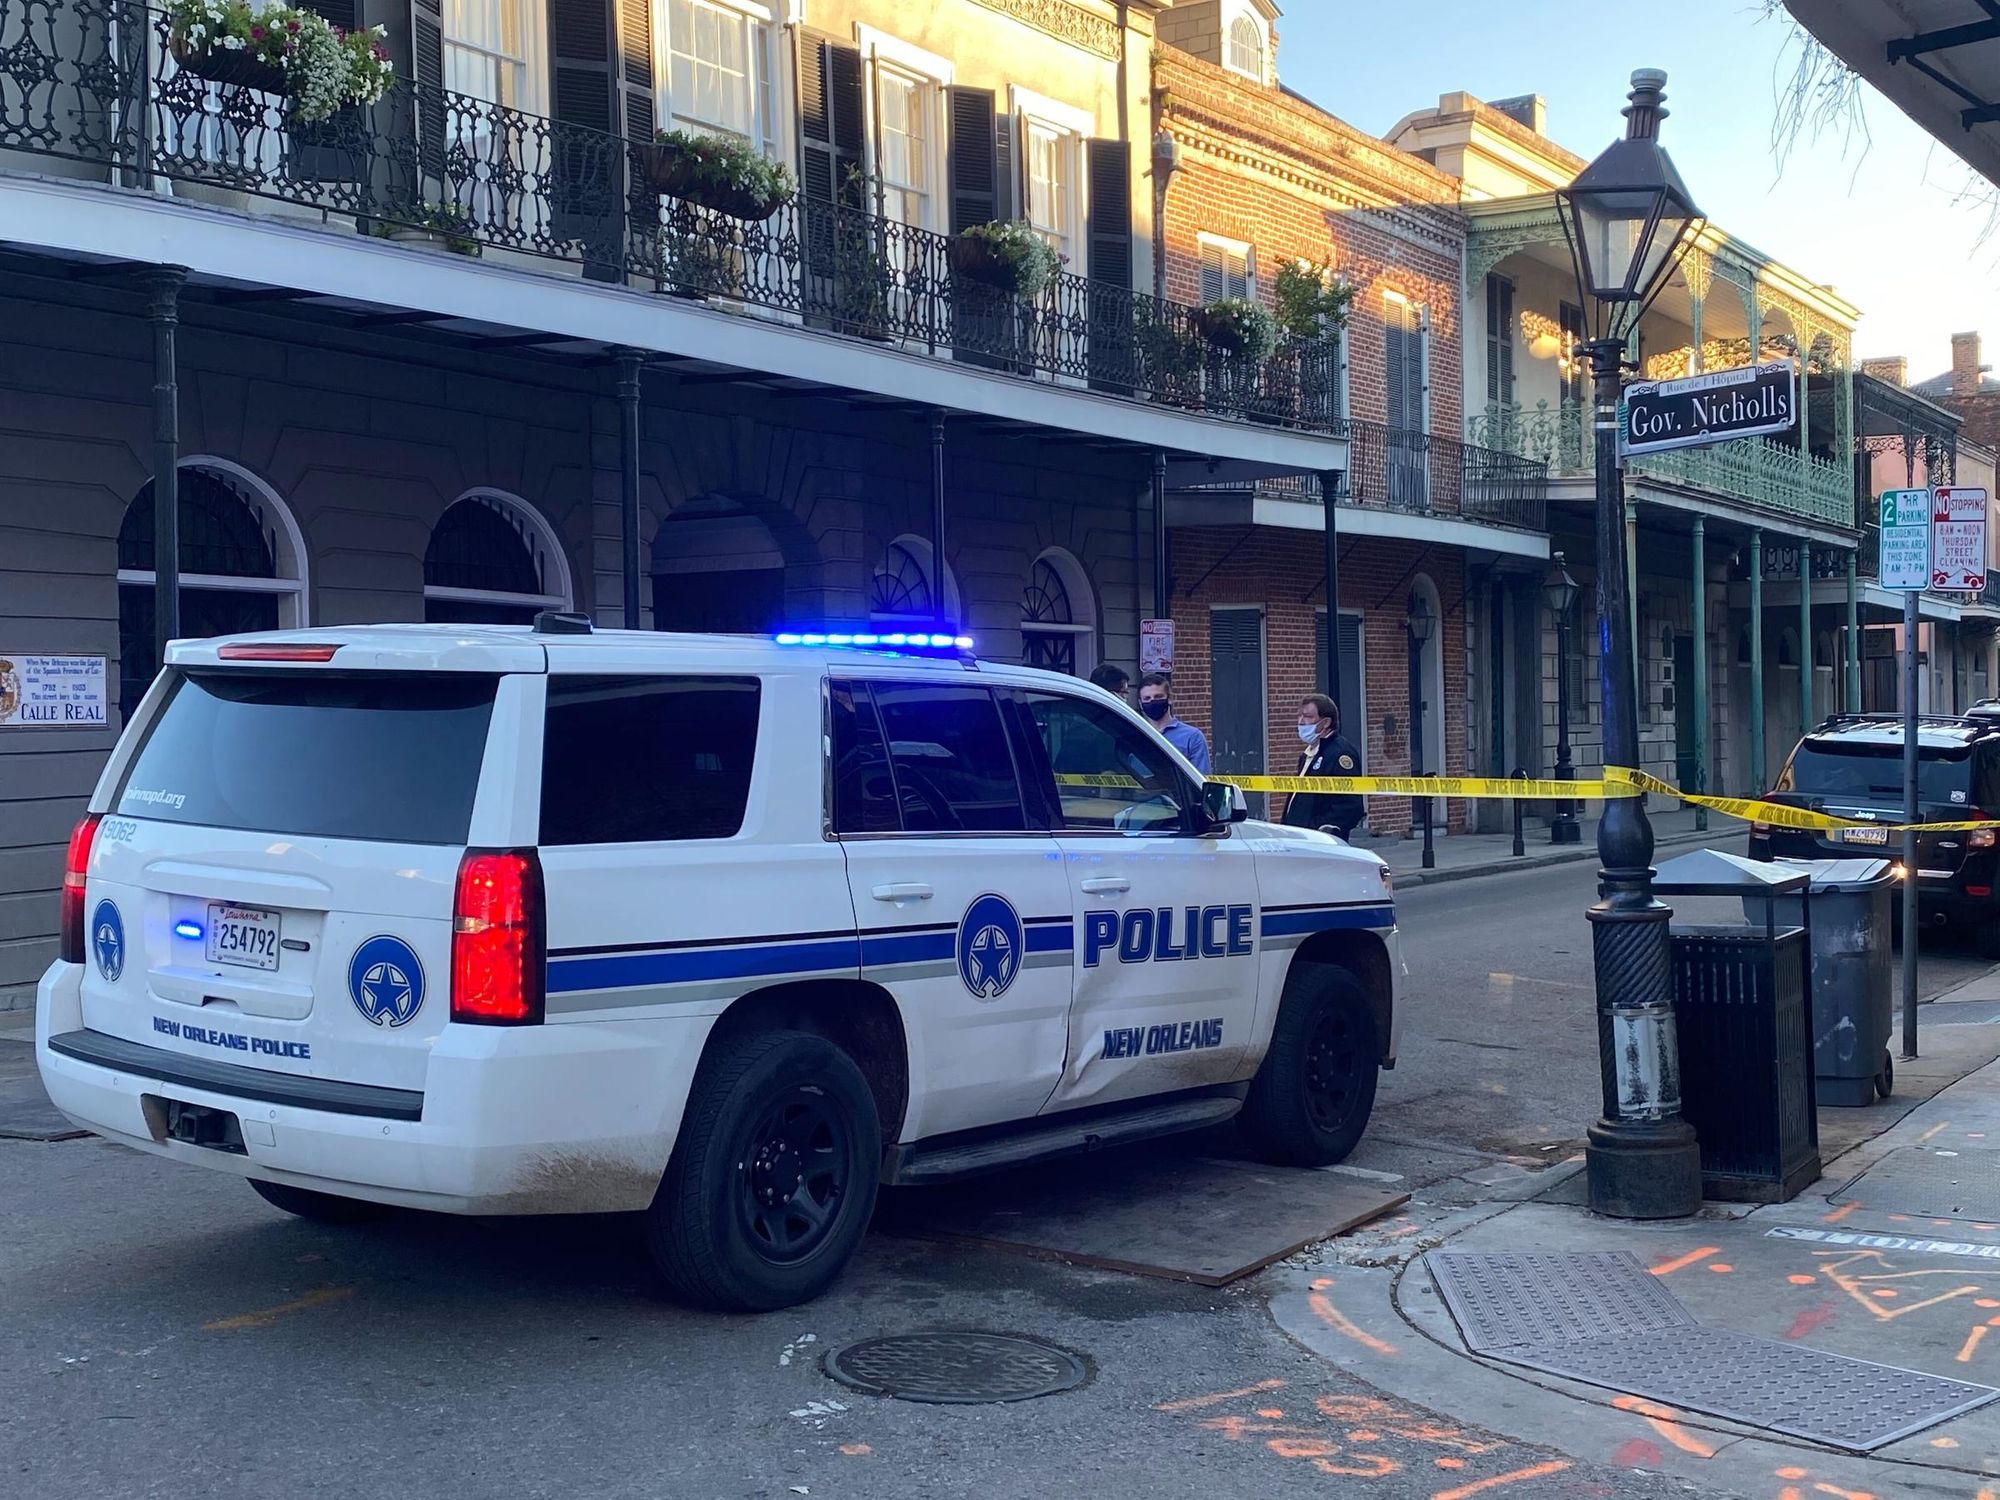 New Orleans police officers shot in 'ambush'